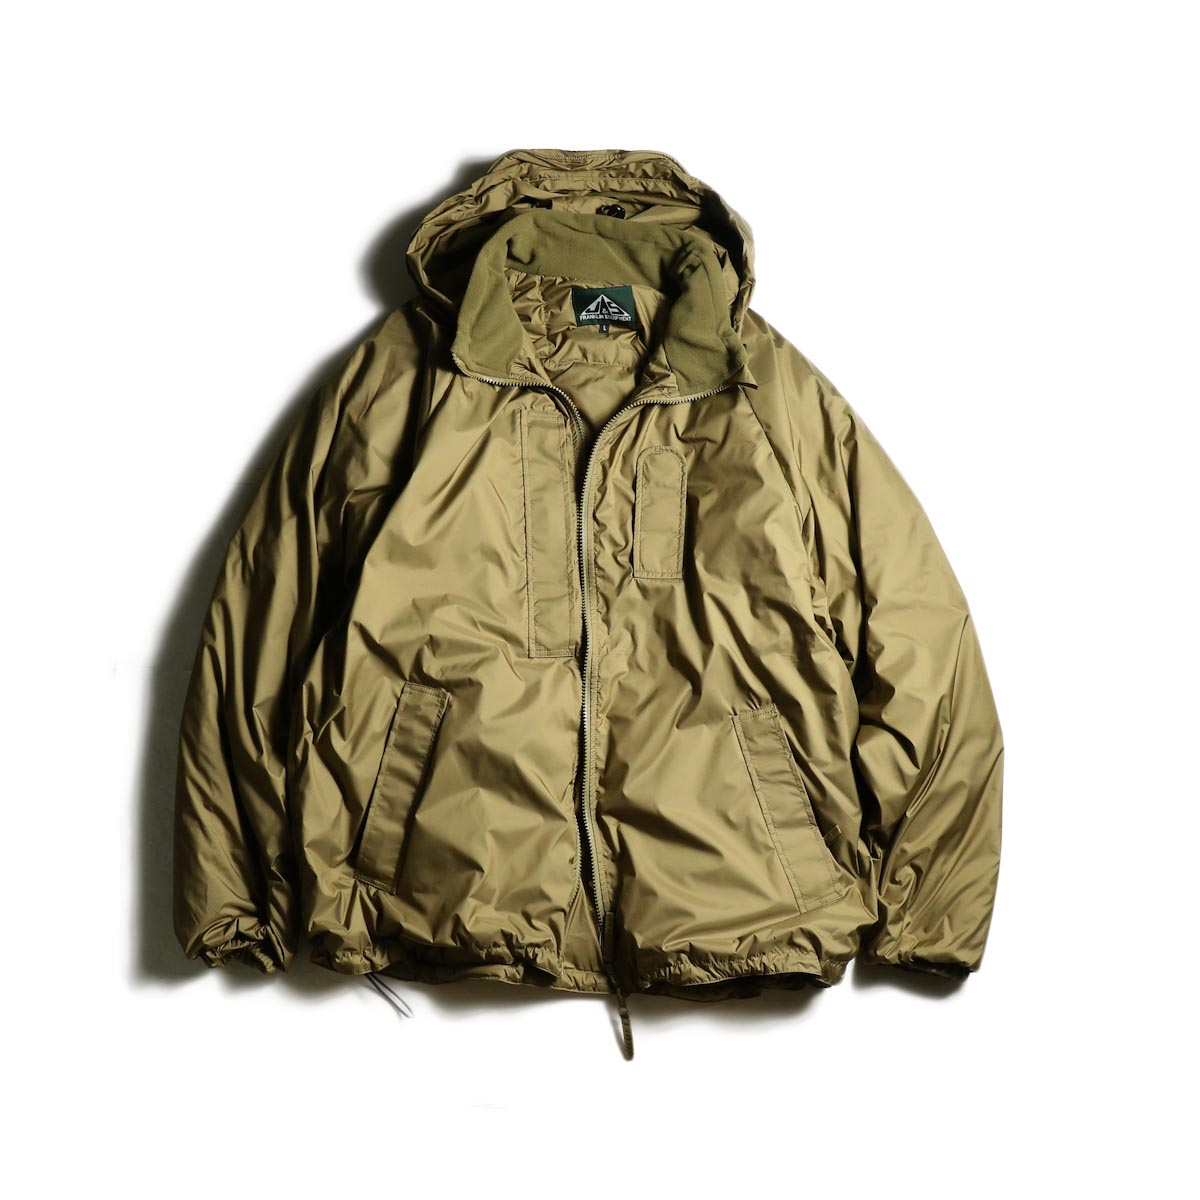 J&S Franklin / BRITISH ARMY PCS LIGHT WEIGHT DOWN JACKET (Coyote)正面